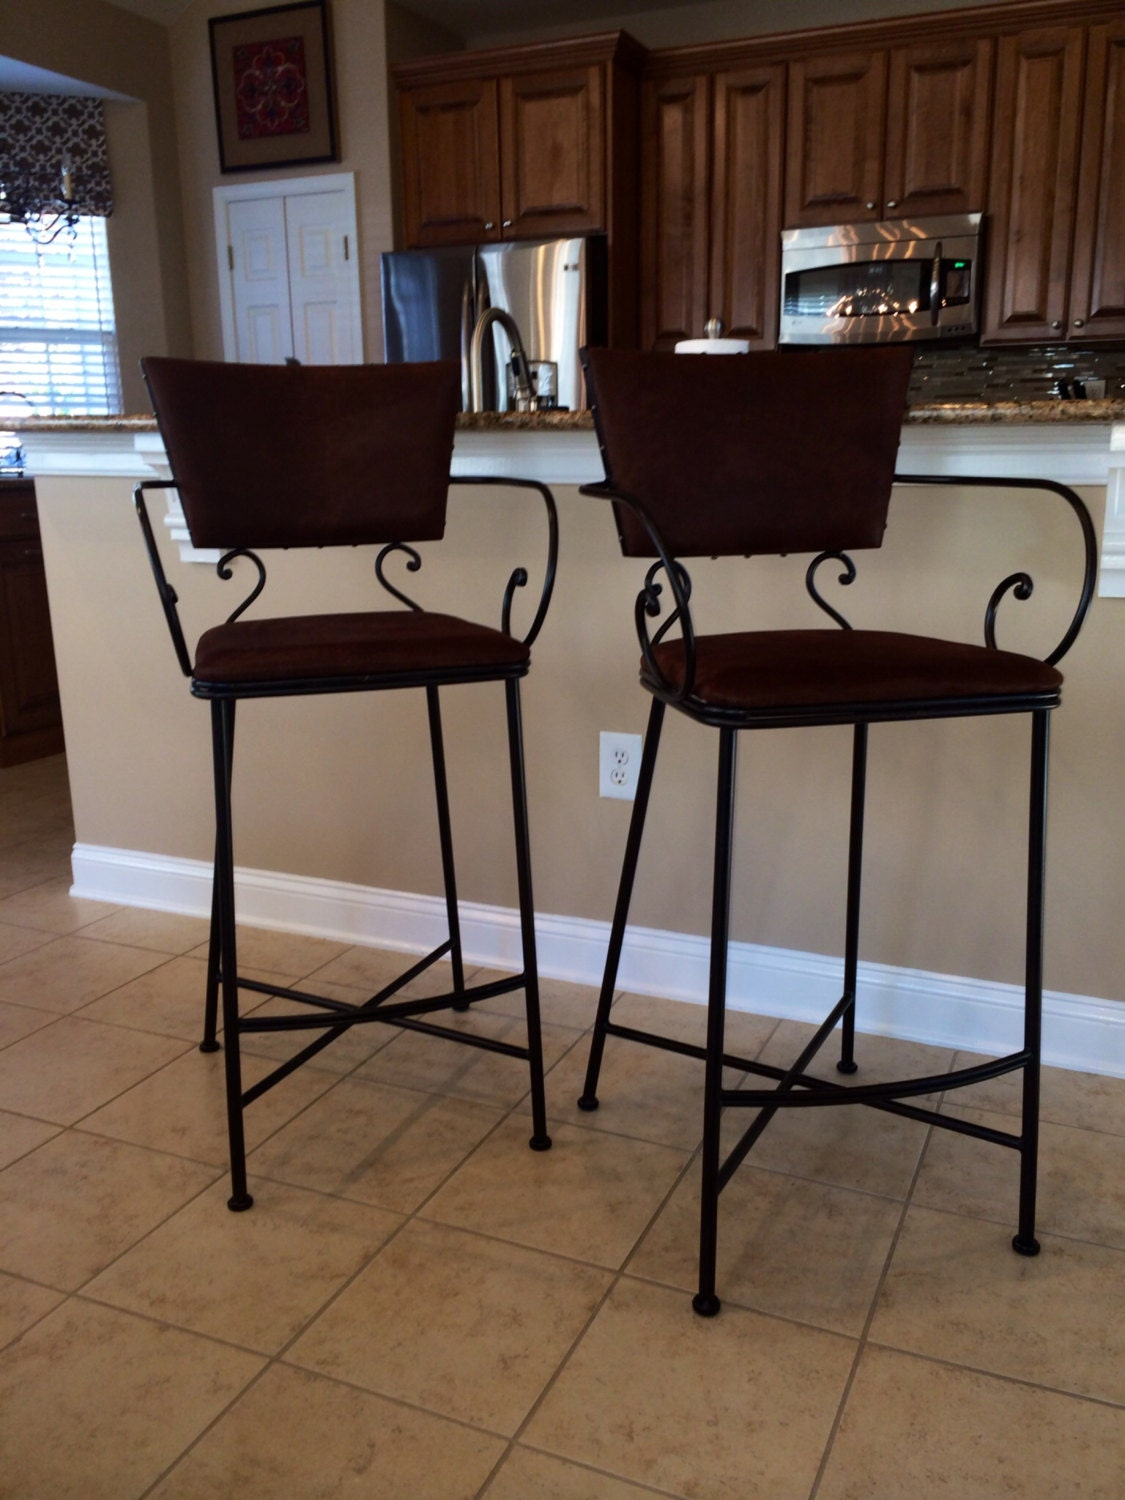 Pier One Bar Stools By Artistichometouches On Etsy